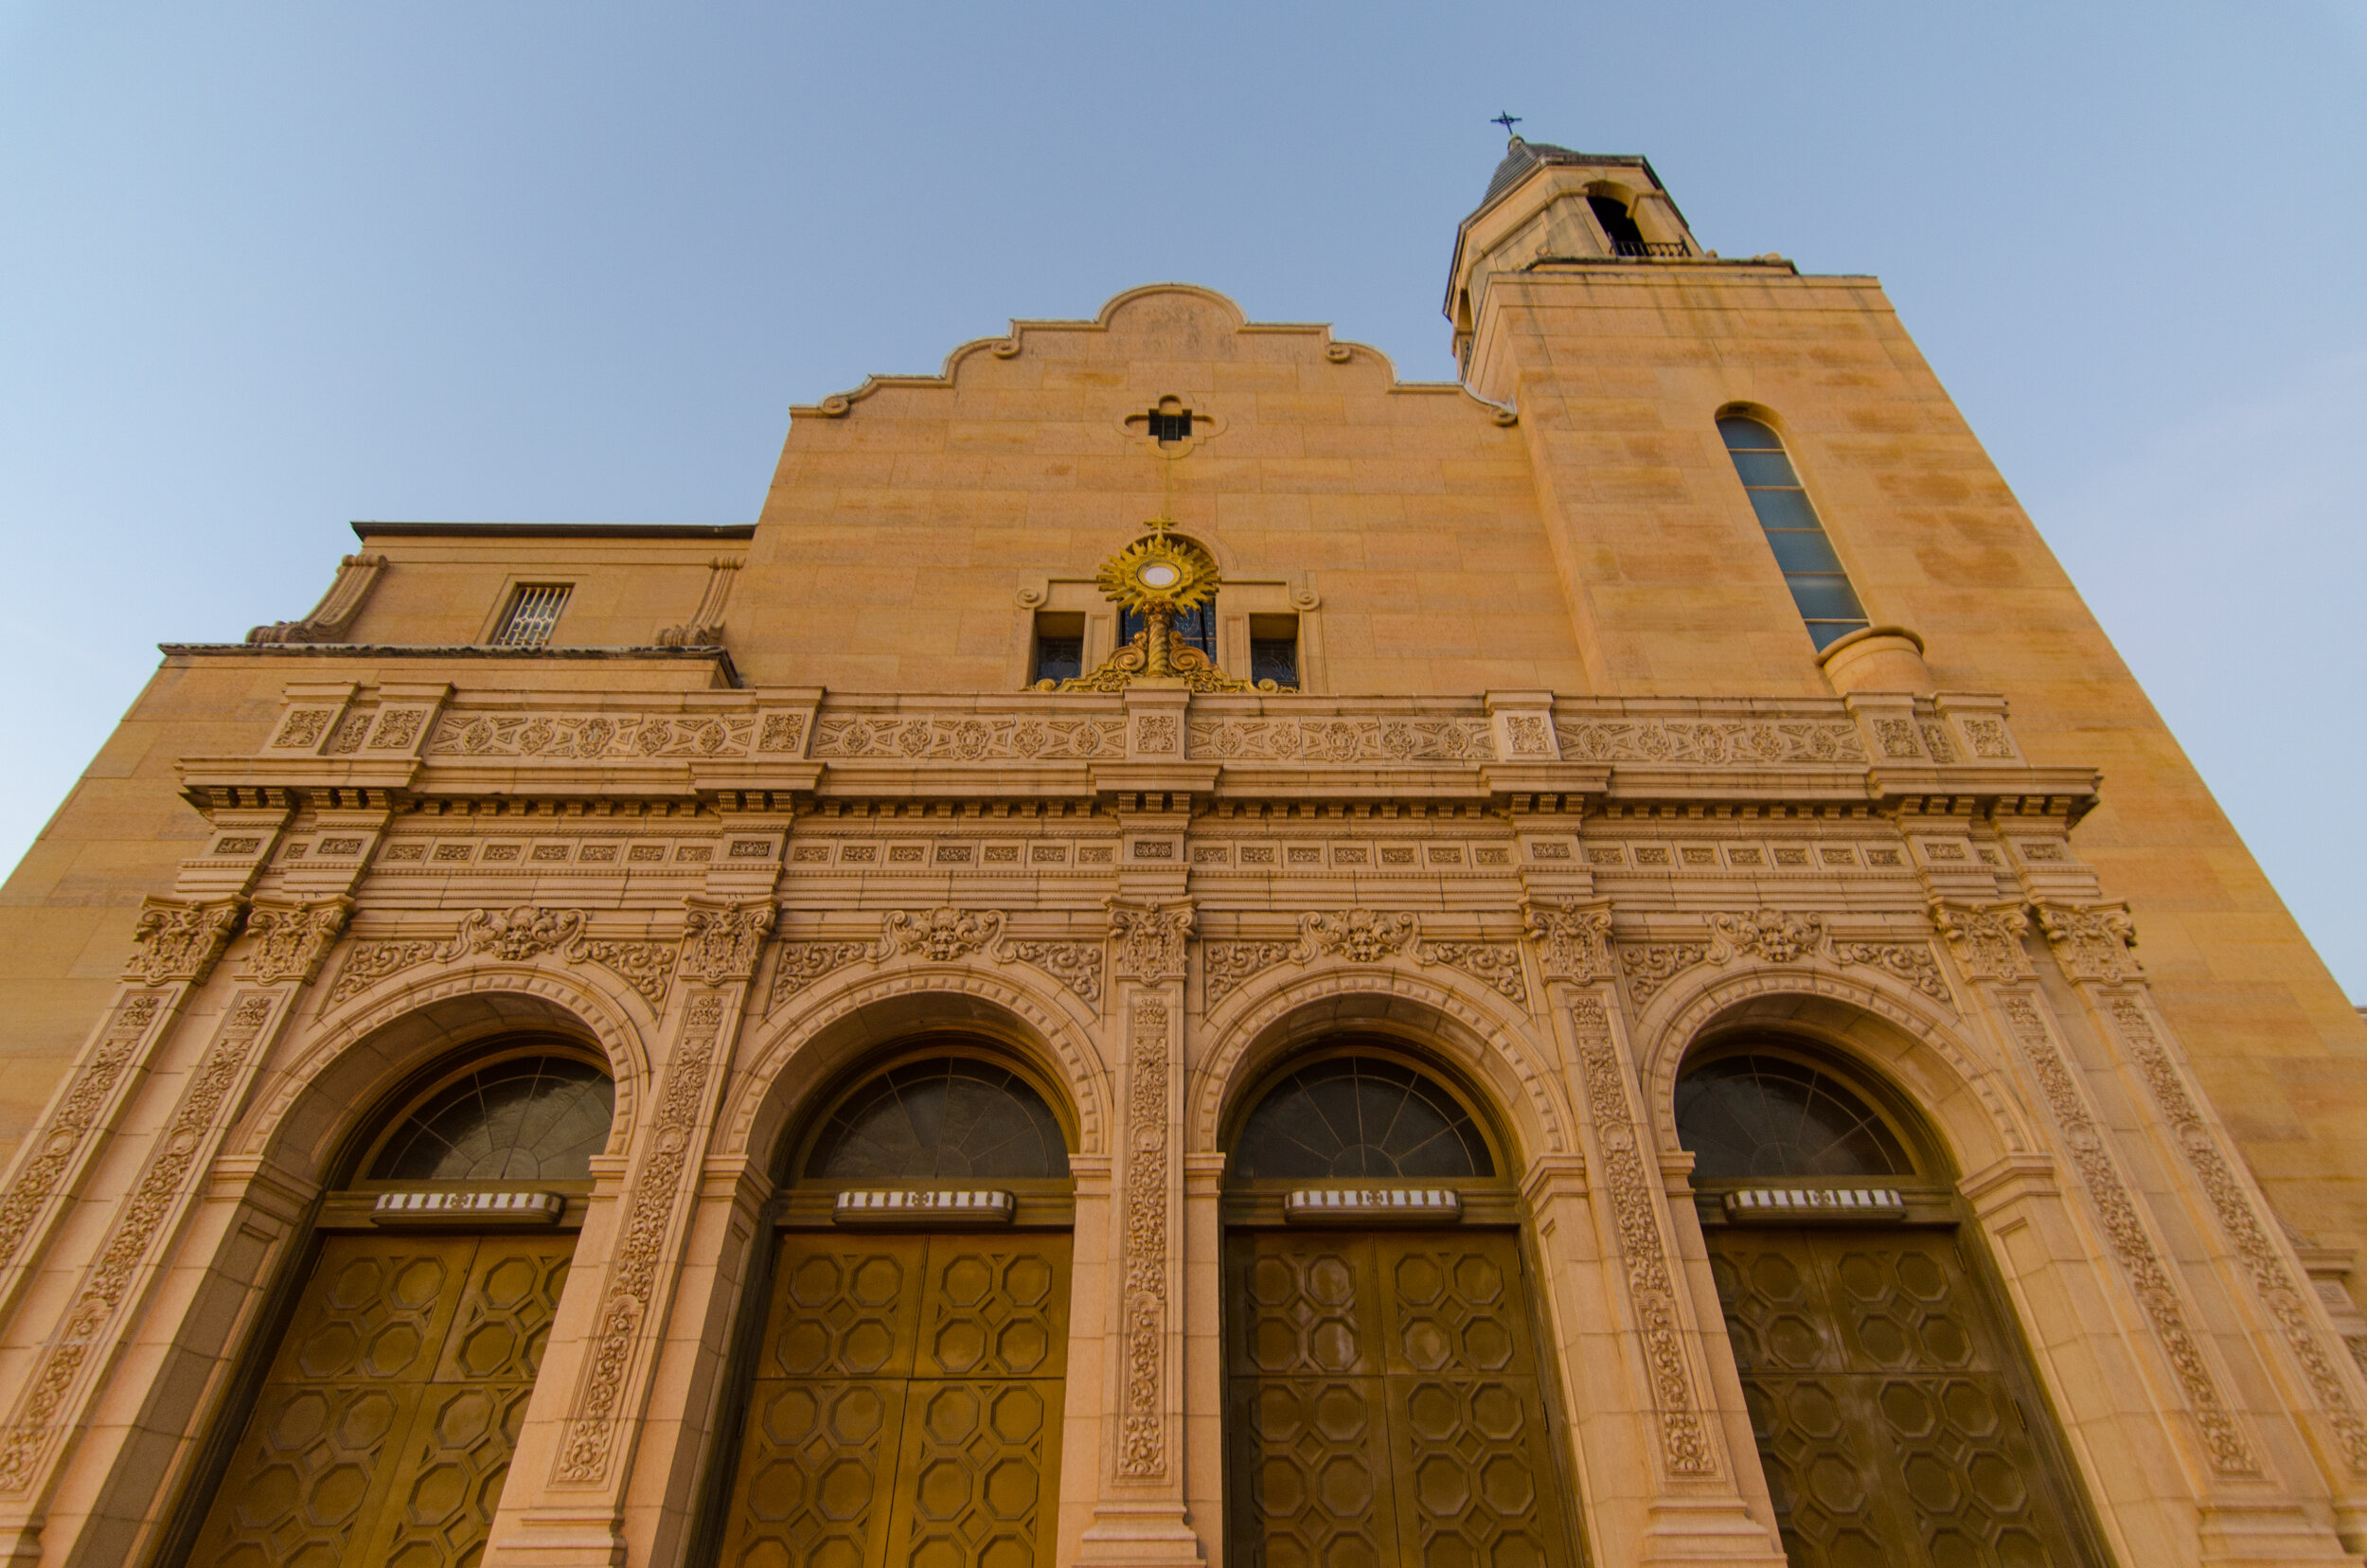 OUR LADY OF VICTORY ROMAN CATHOLIC CHURCH - 5212 W. Agatite Ave.